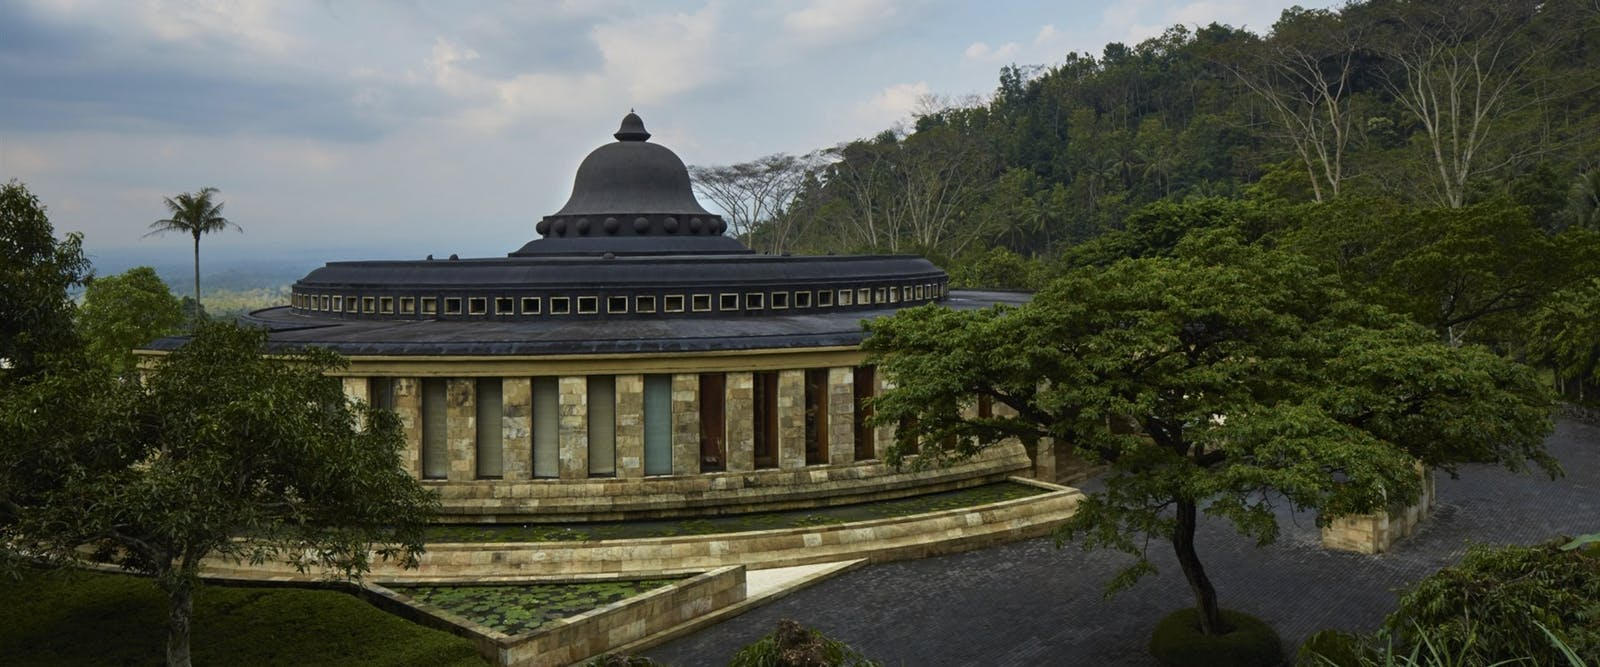 Main Building Rotunda at Amanjiwo, Bali